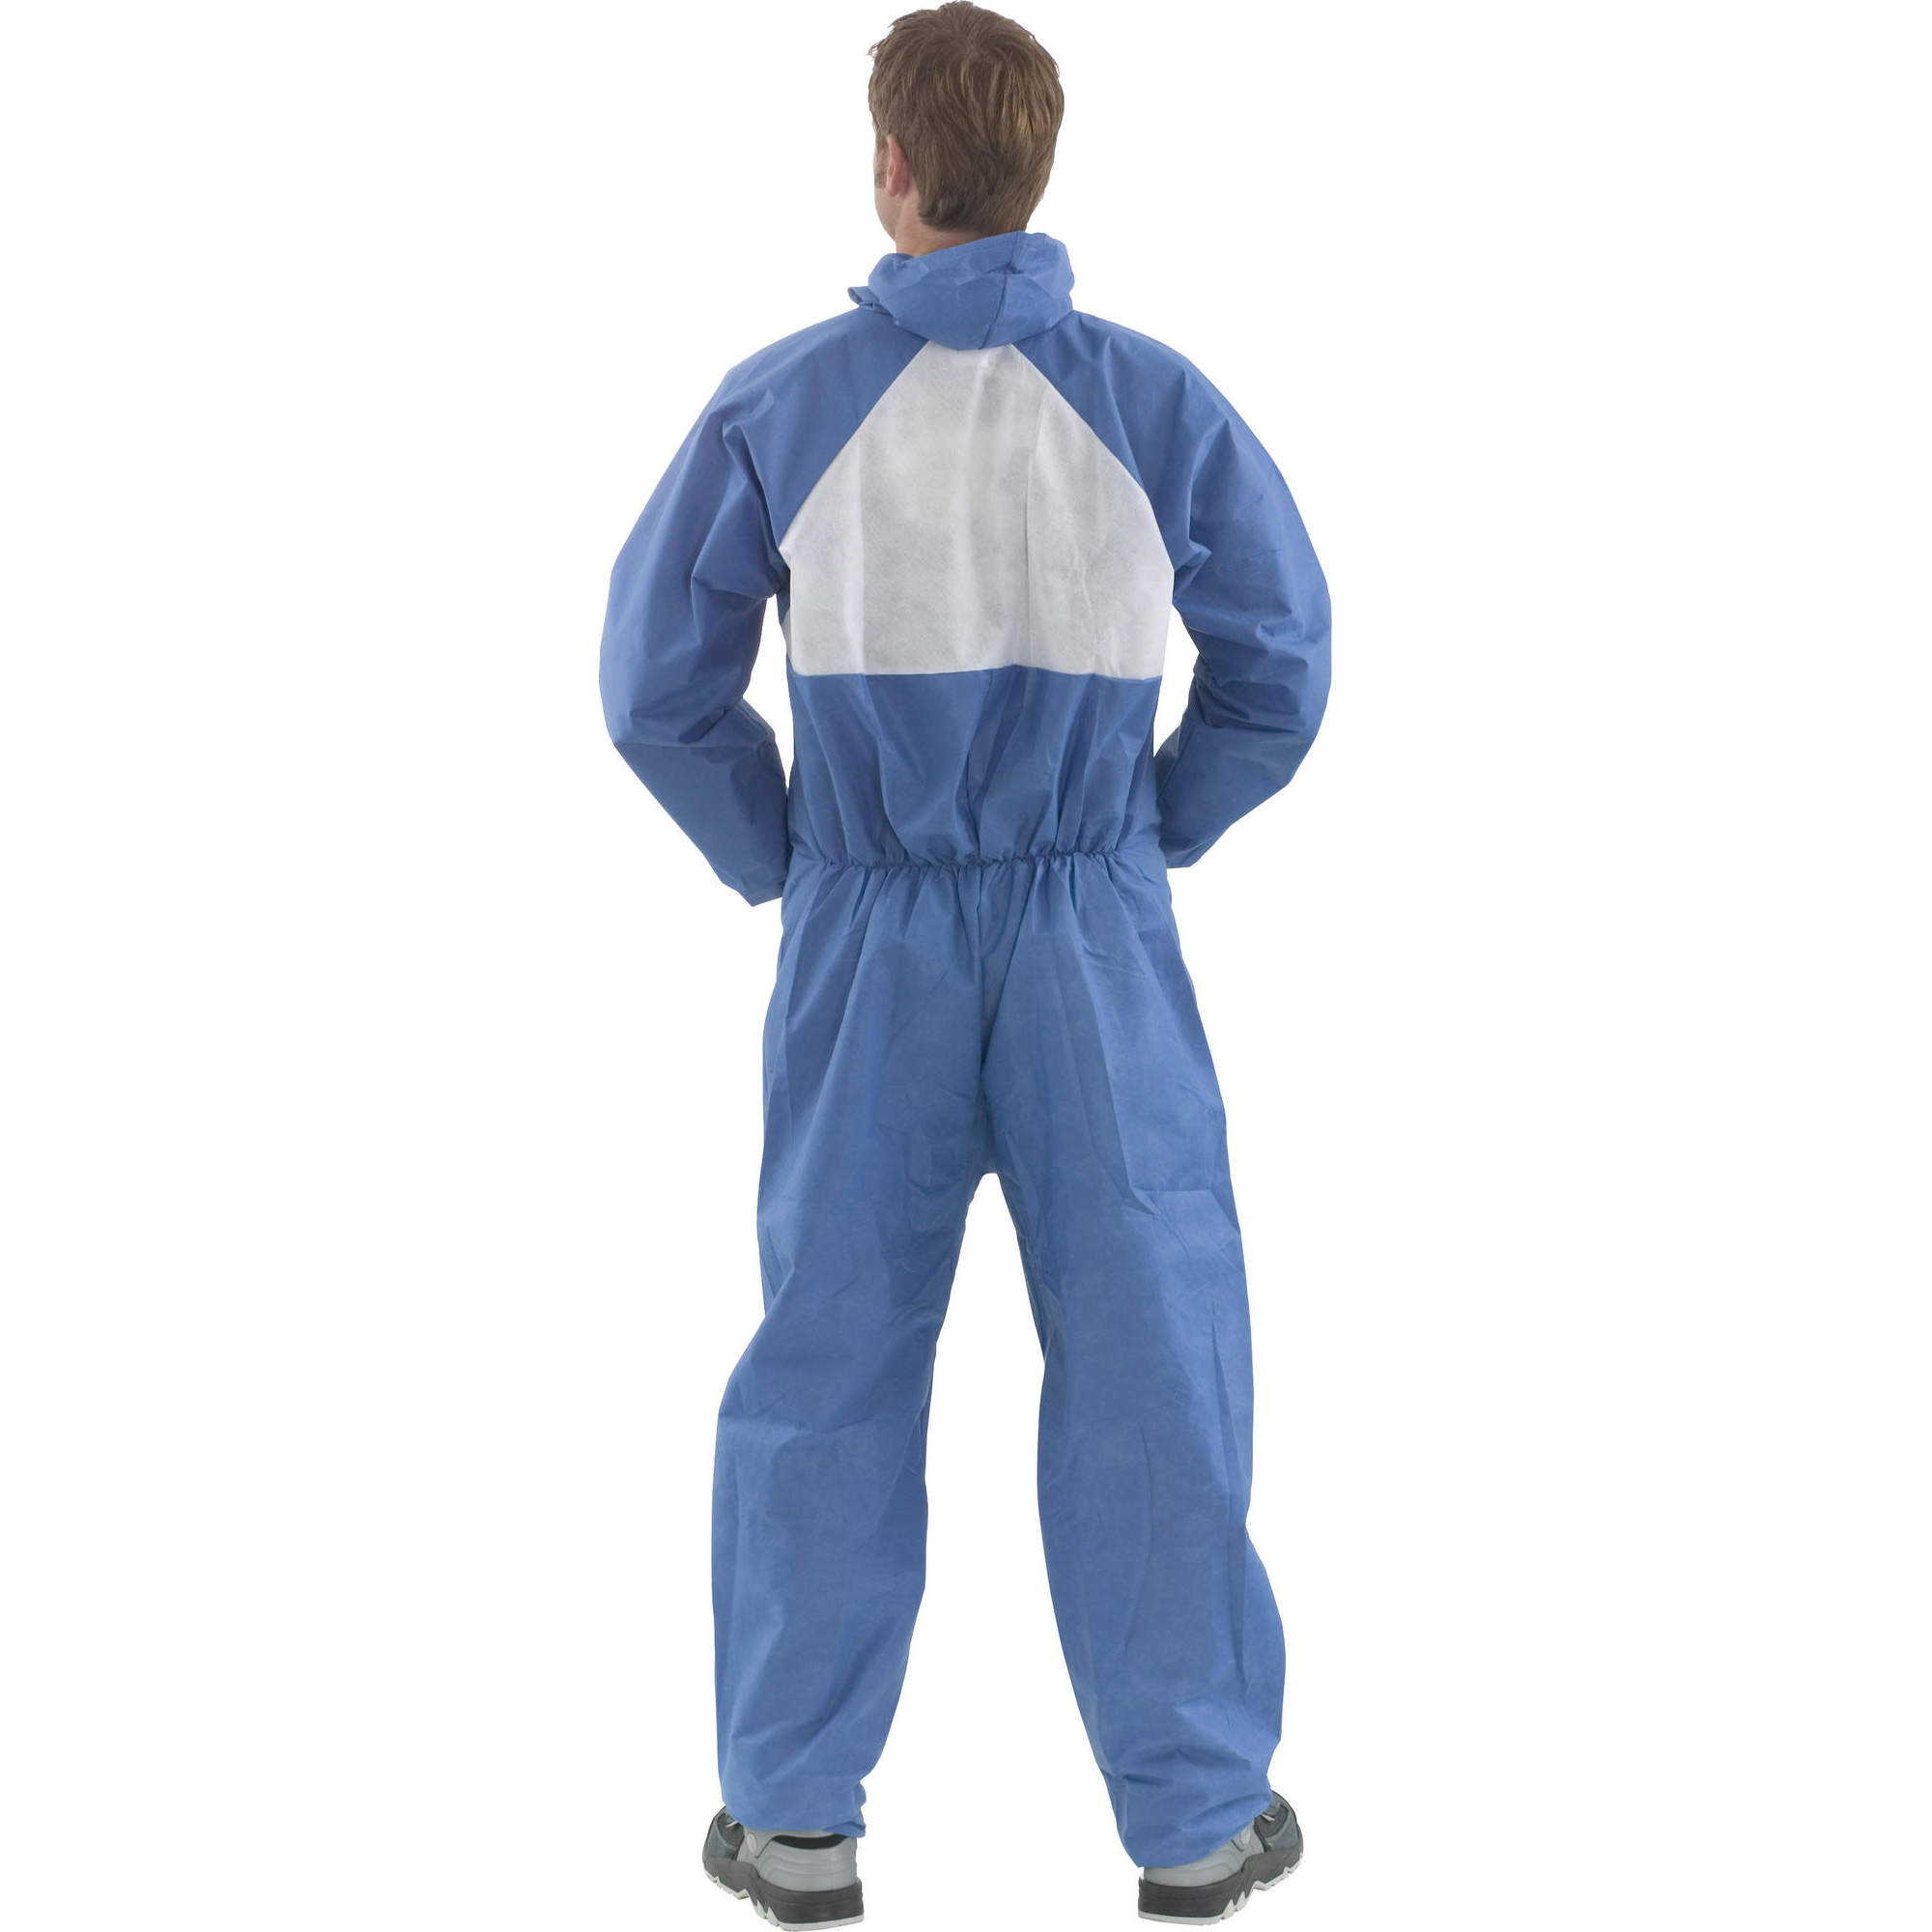 3M 4530 Fire Resistant Coveralls 3XL Blue/White Ref 4530XXXL Pack 20 *Up to 3 Day Leadtime*